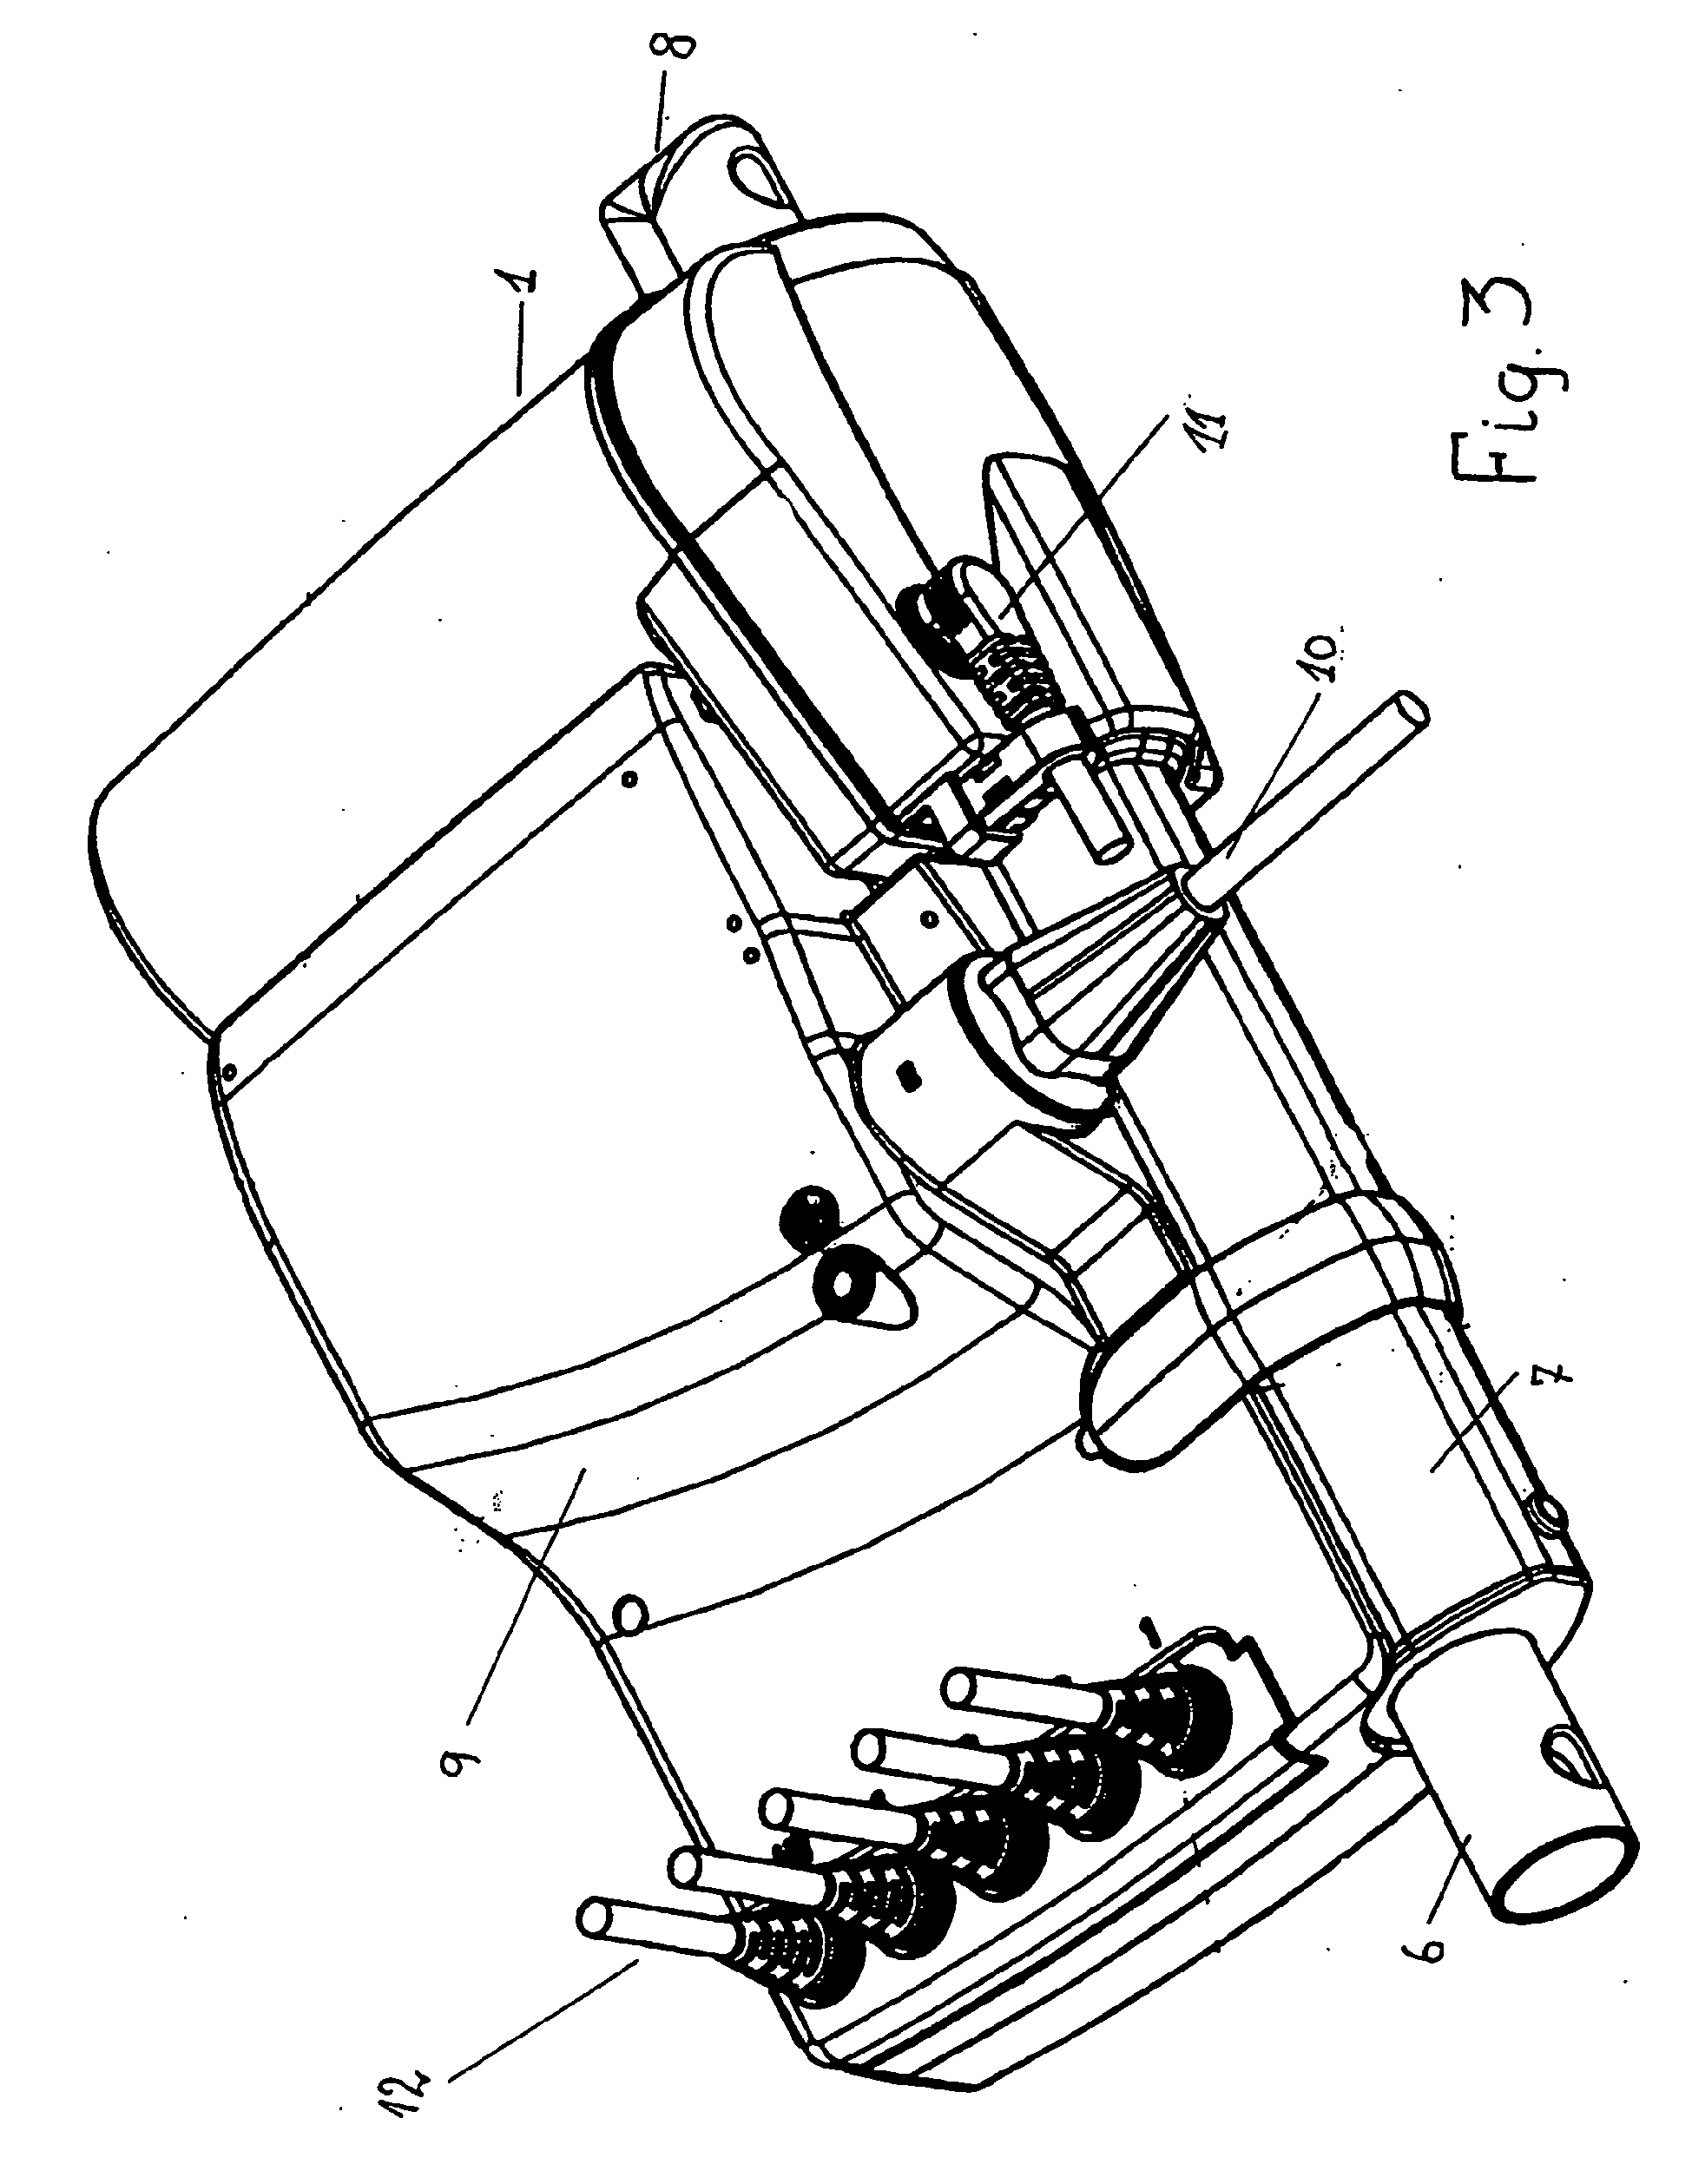 patent ep1800023b1 - a linear actuator